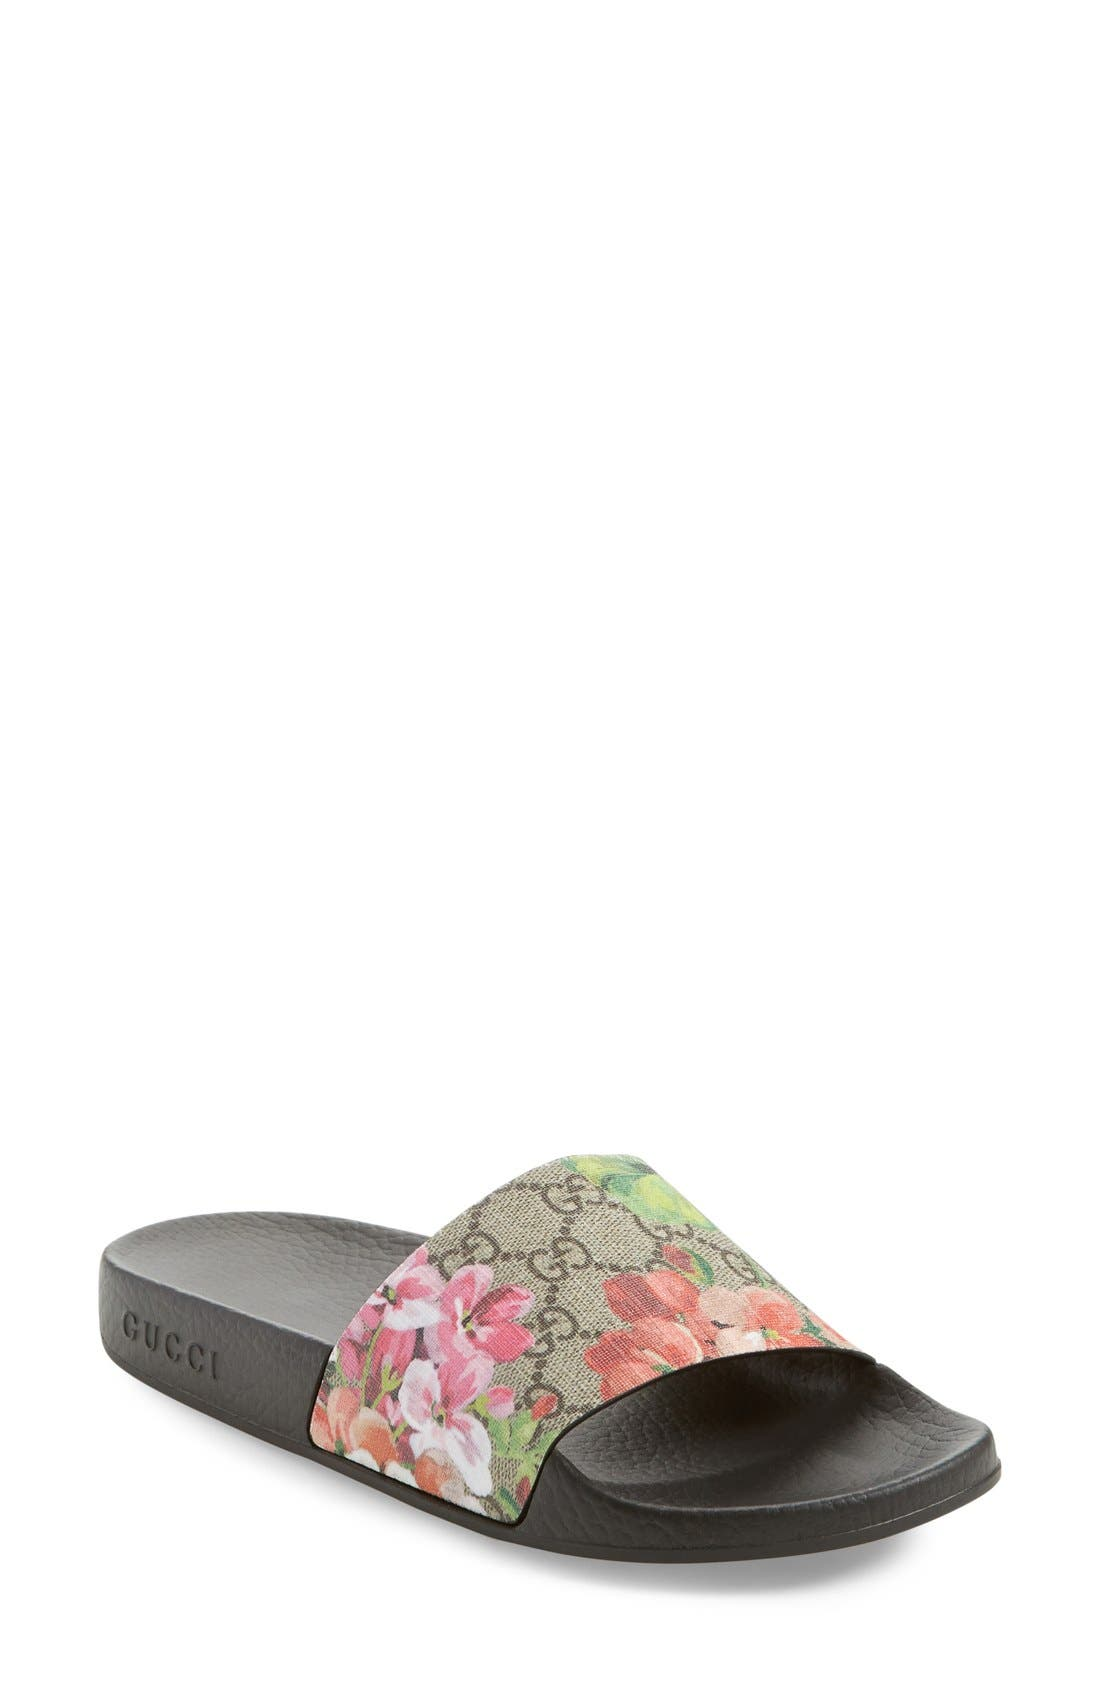 Pursuit Slide Sandal,                         Main,                         color, Multi Color Fabric